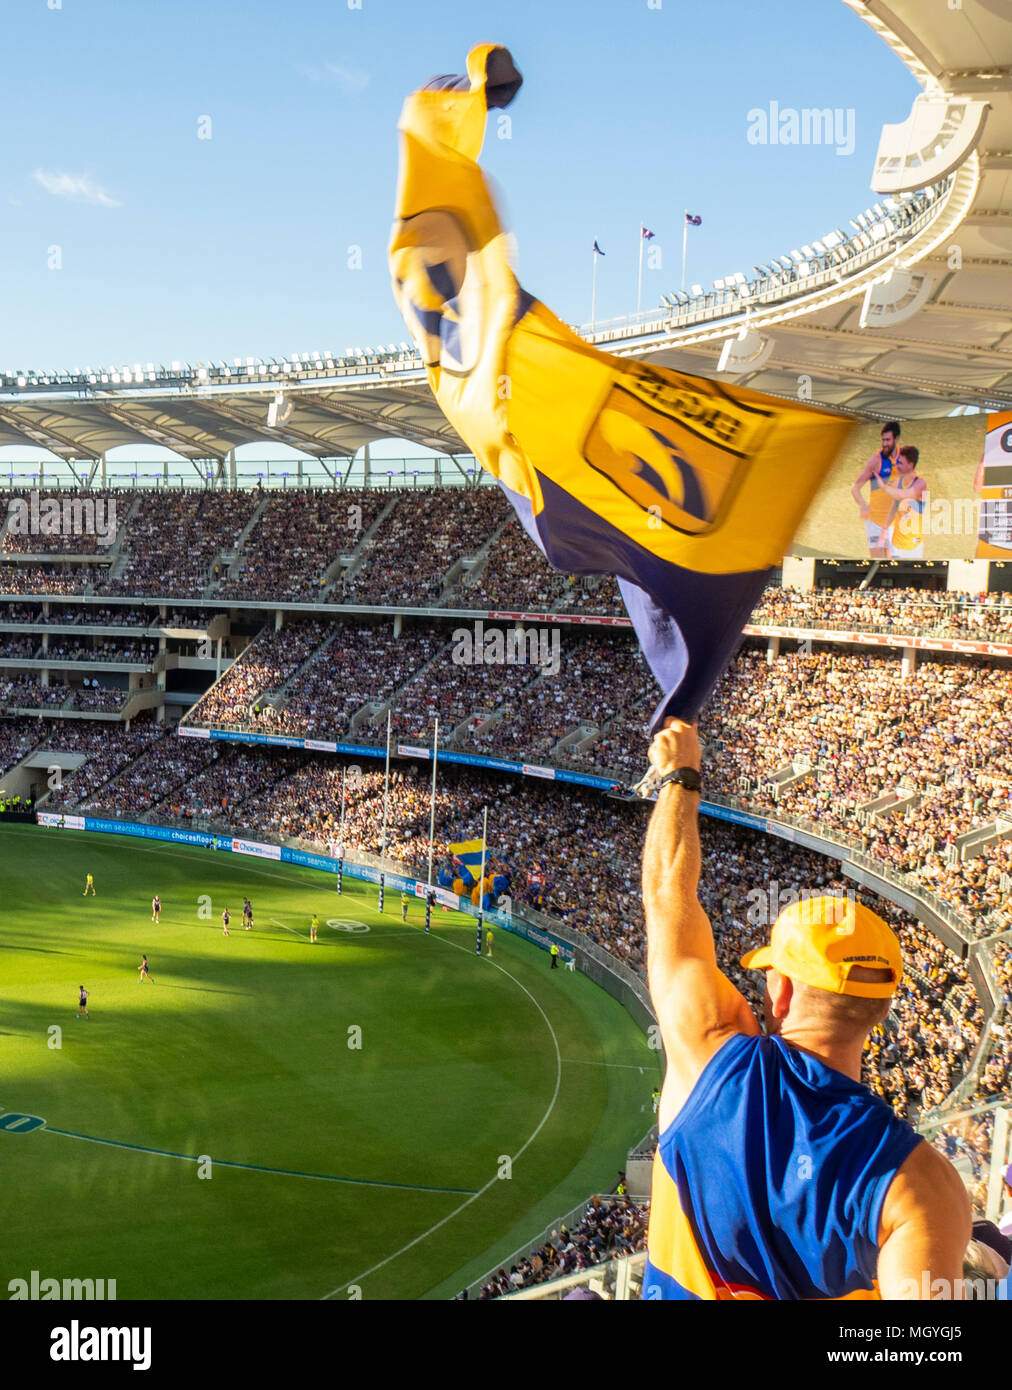 A West Coast Eagles fan waves the club flag after the team scores a goal in the Western derby at Optus Stadium, Perth, WA, Australia. Stock Photo